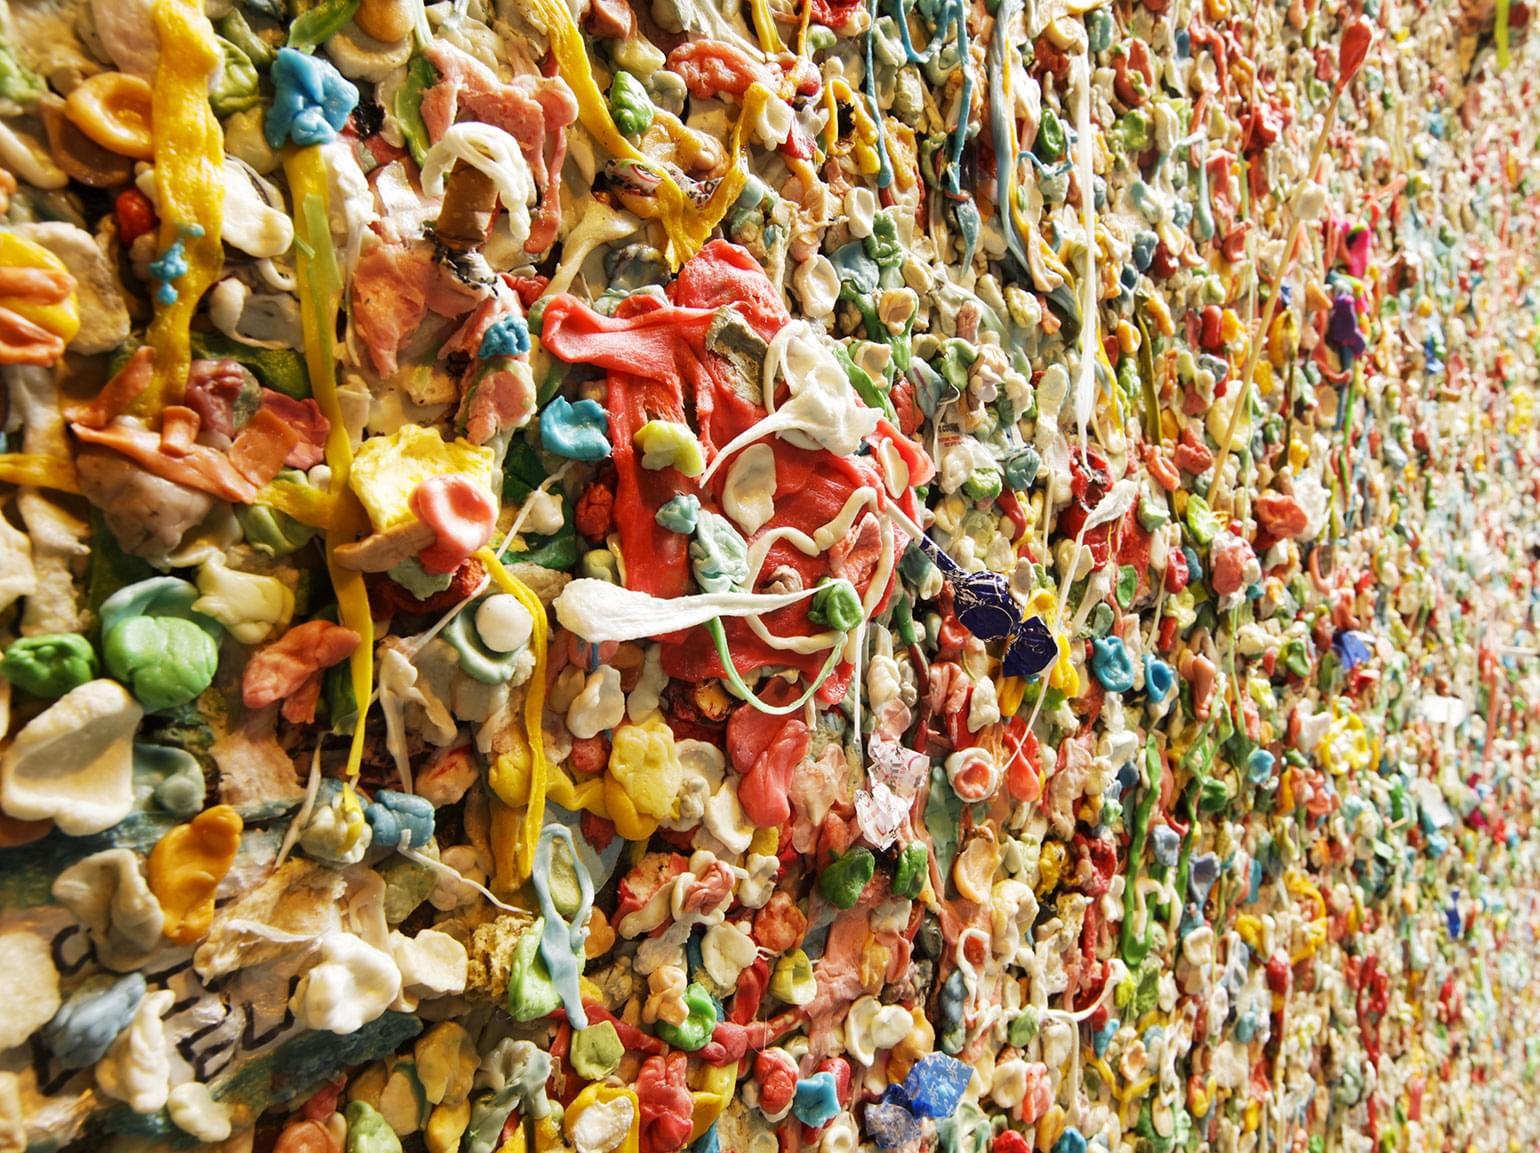 The famous bubble gum wall in Post Alley near the Pike Place Market in Seattle.